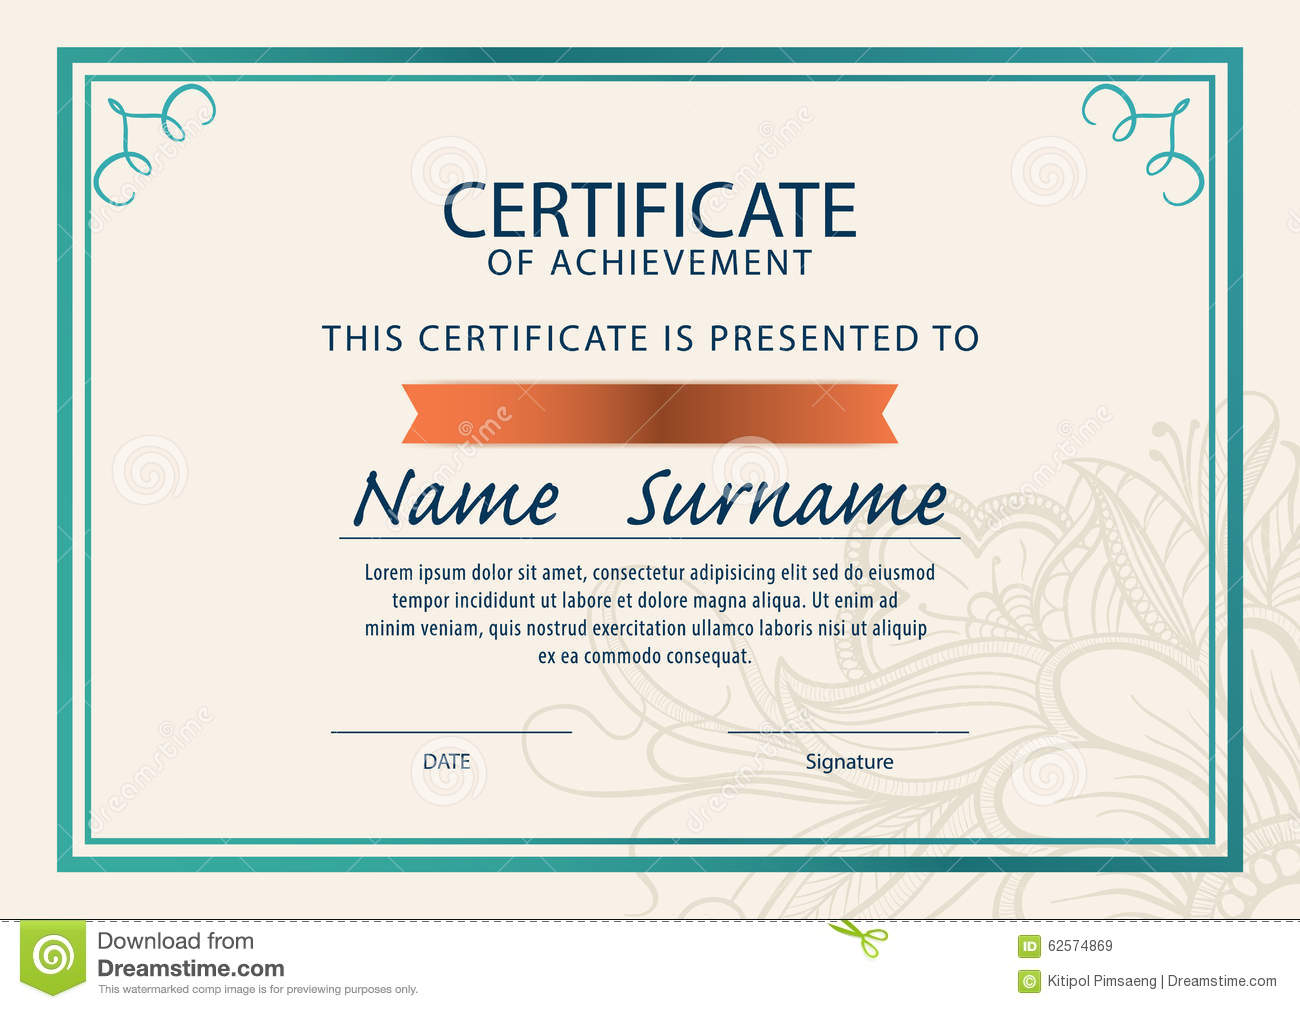 Certificate templatediplomaa4 size stock illustration certificate templatediplomaa4 size royalty free illustration yadclub